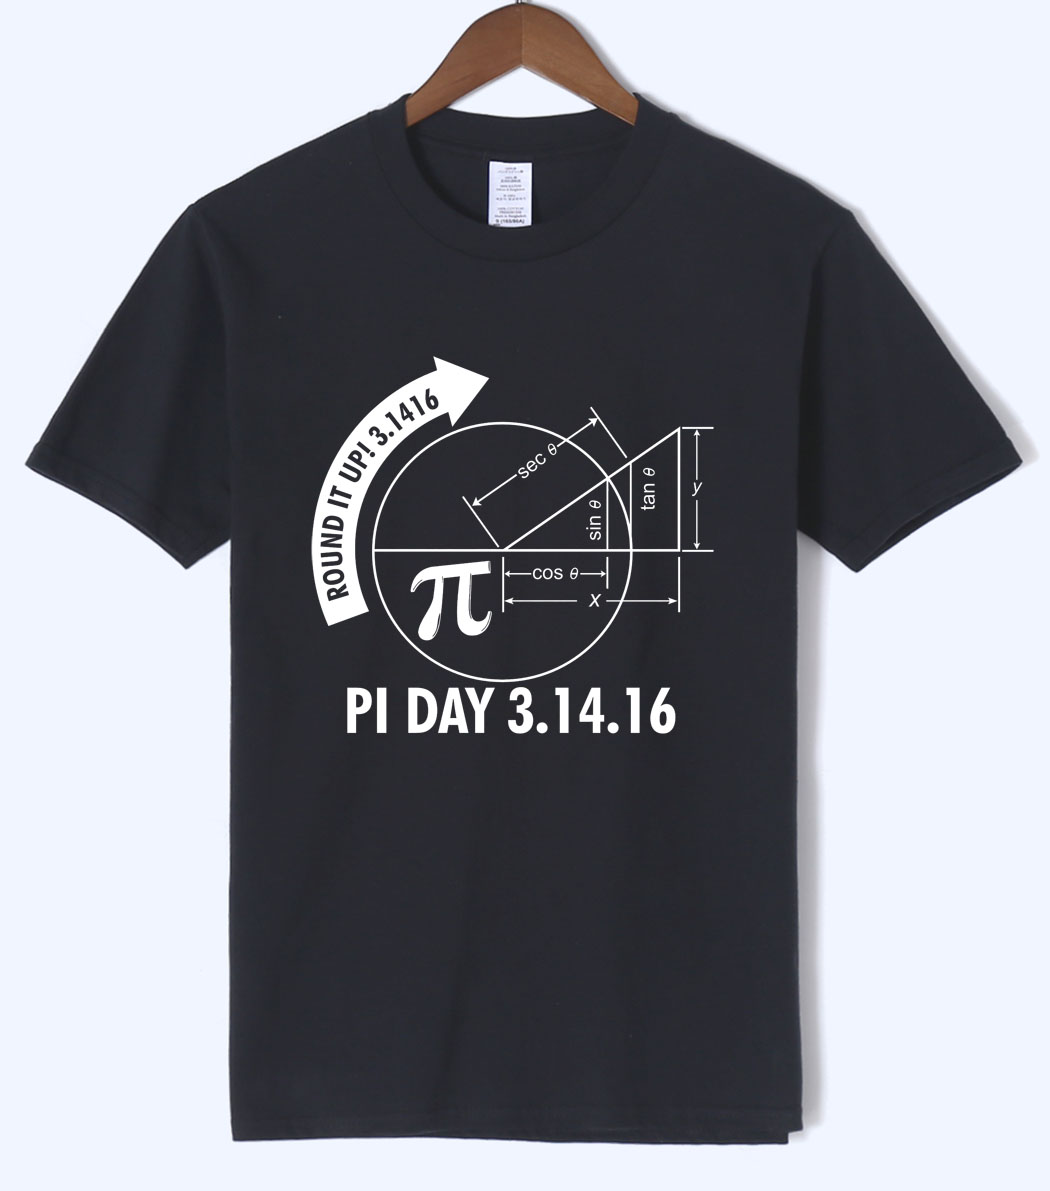 Pi Day 3.1416 Round It Up Math Graph T Shirt Summer New Mens TShirt Cotton High Quality Short Sleeve Harajuku Round Neck T-Shirt